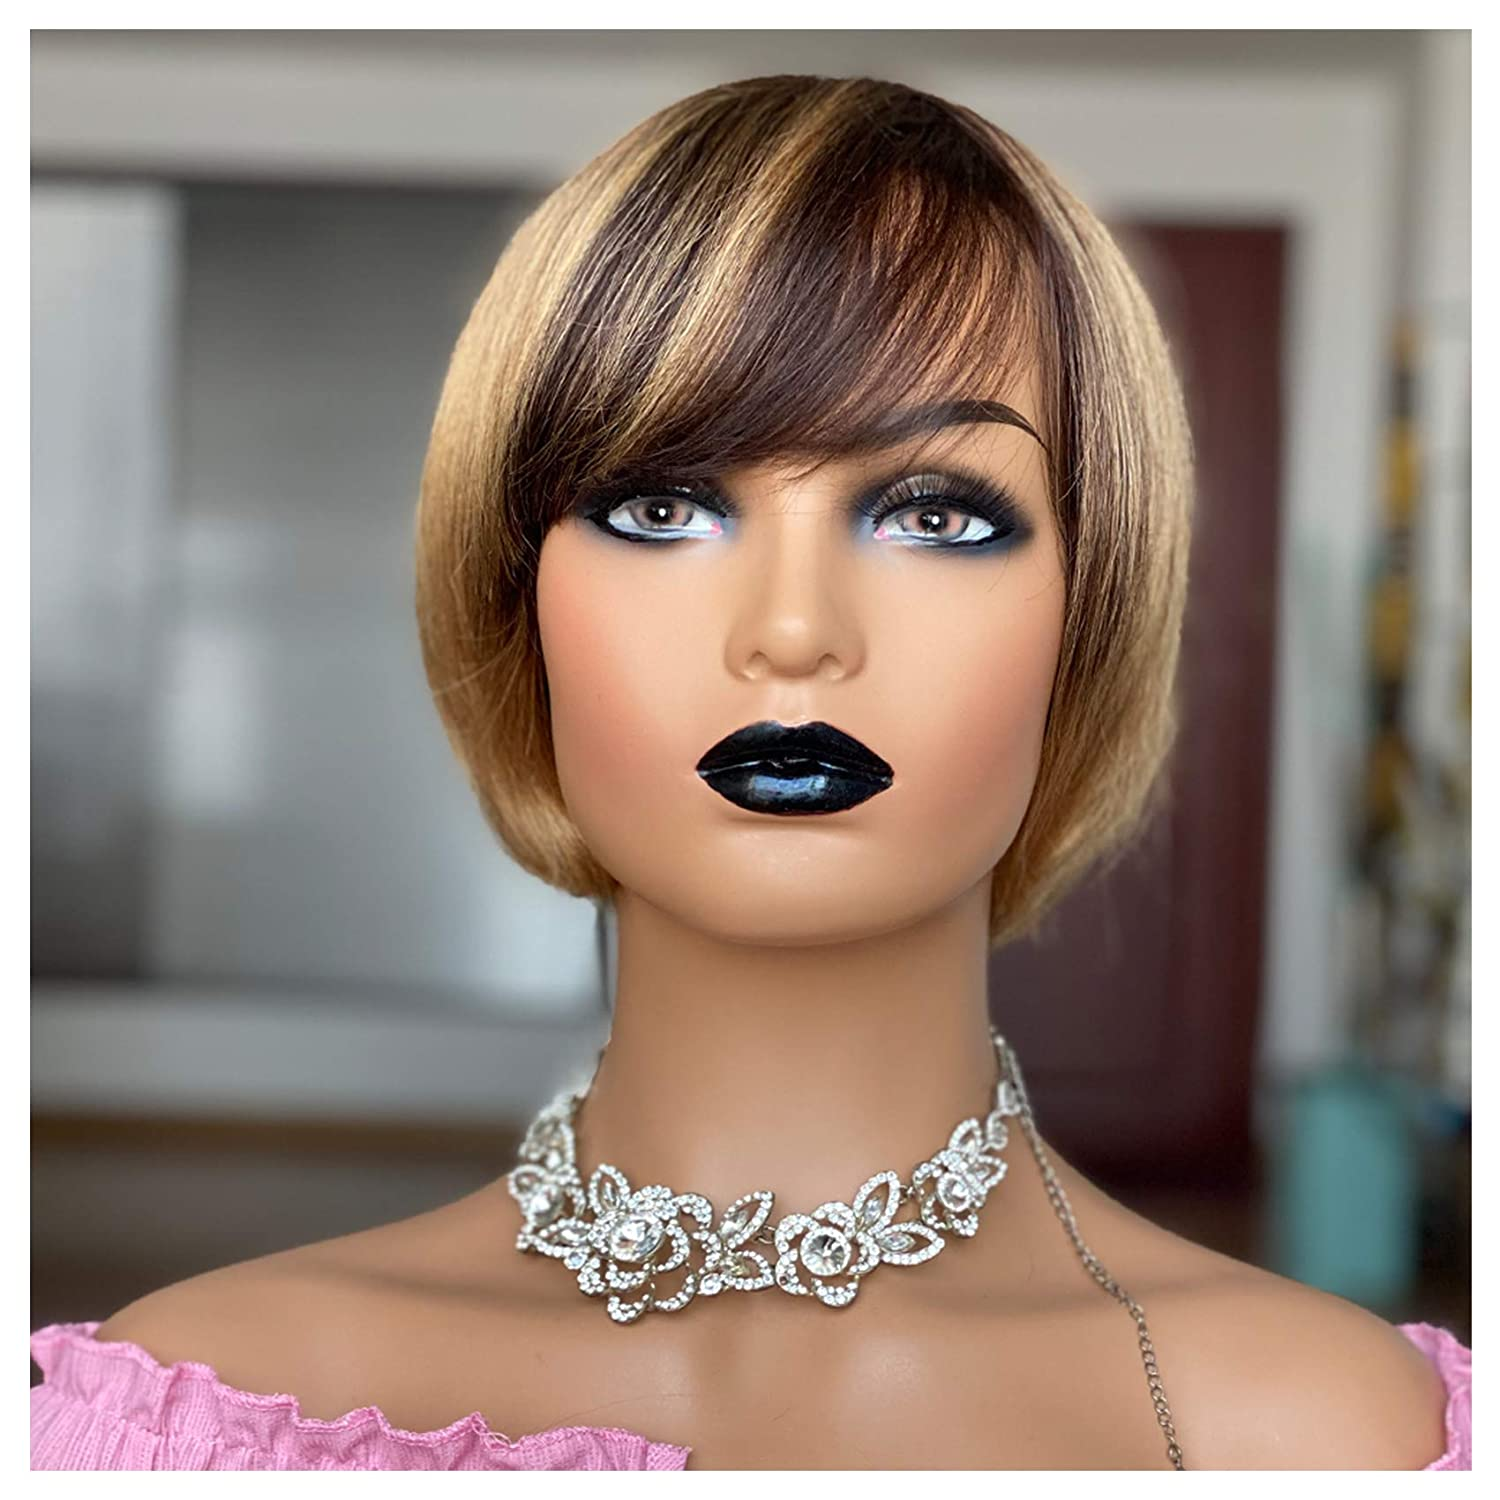 Amazon Com Short Bob Wigs For Black Women Straight Human Hair Wigs With Bangs Ombre Light Brown With Blonde Pixie Cut Wig Mirthful Beauty